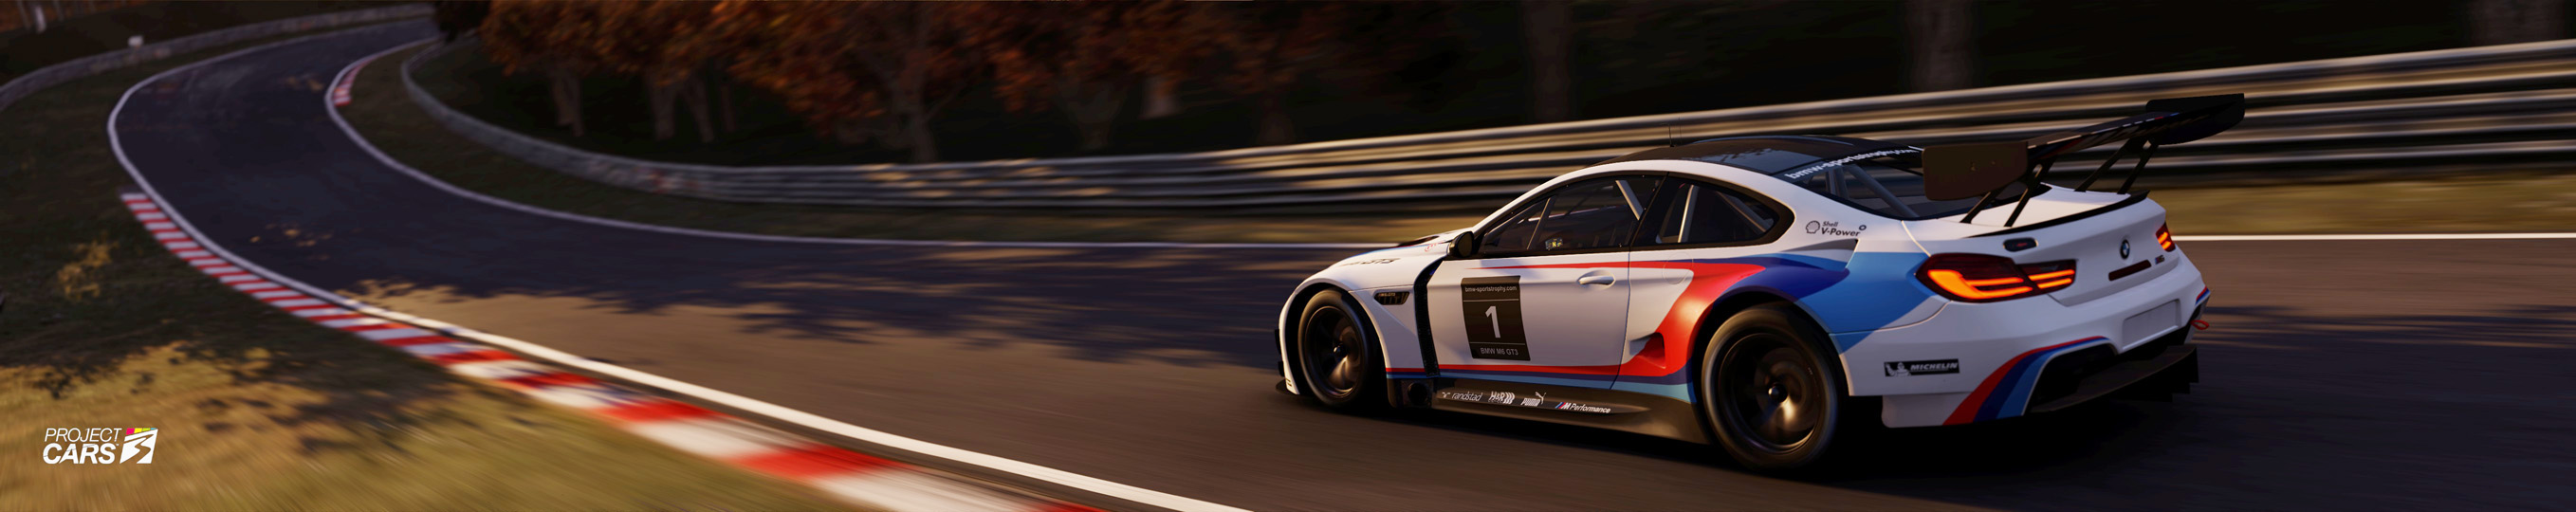 0 PROJECT CARS 3 BMW GT3 on NORDS crop copy.jpg